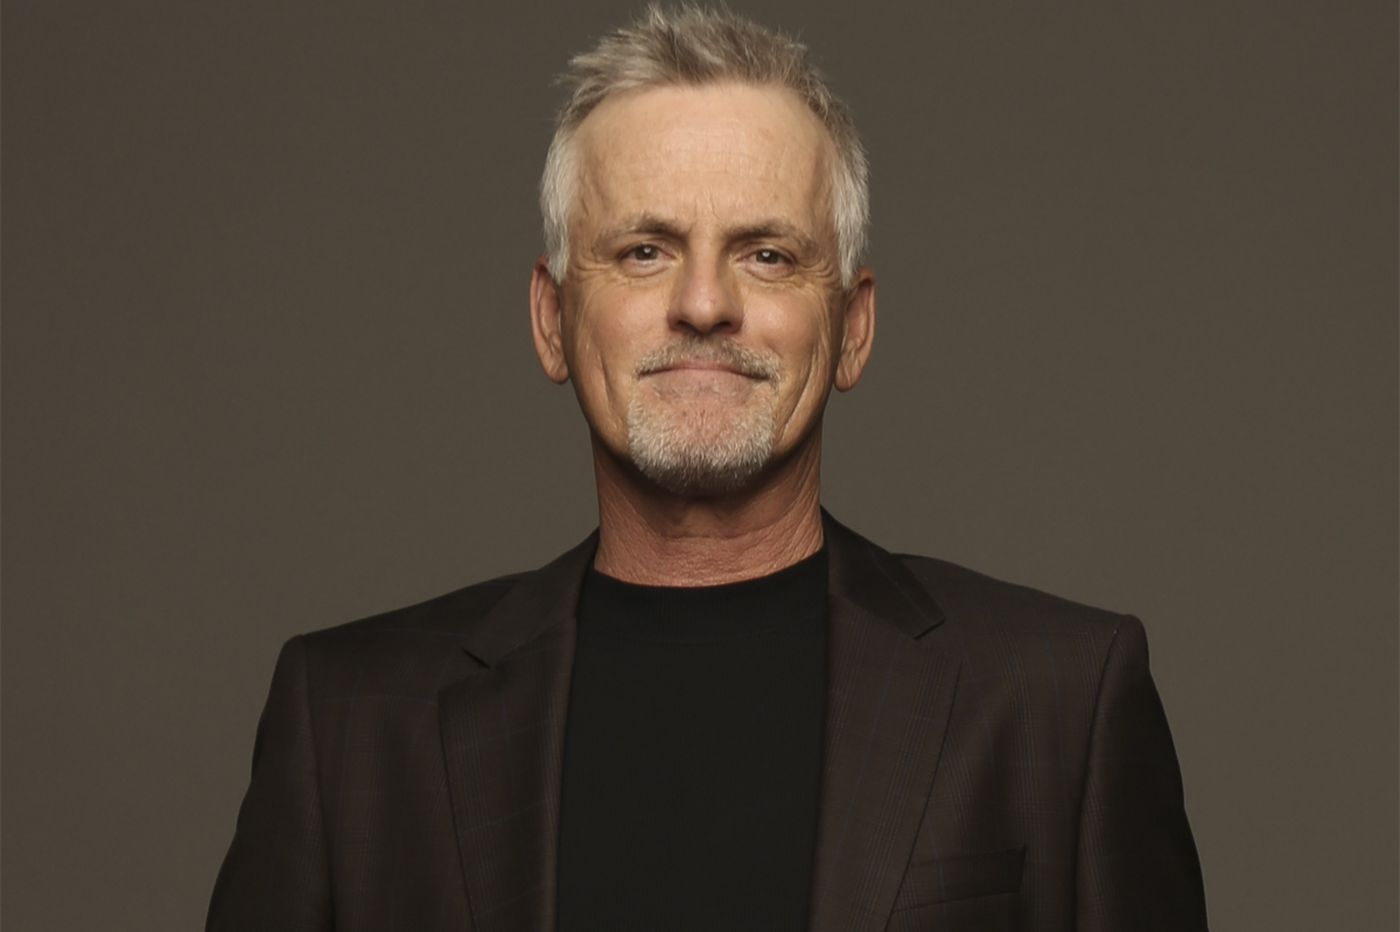 Rob Paulsen – the voice of 'Pinky and the Brain's' Pinky – will bring his characters to Keystone Comic Con